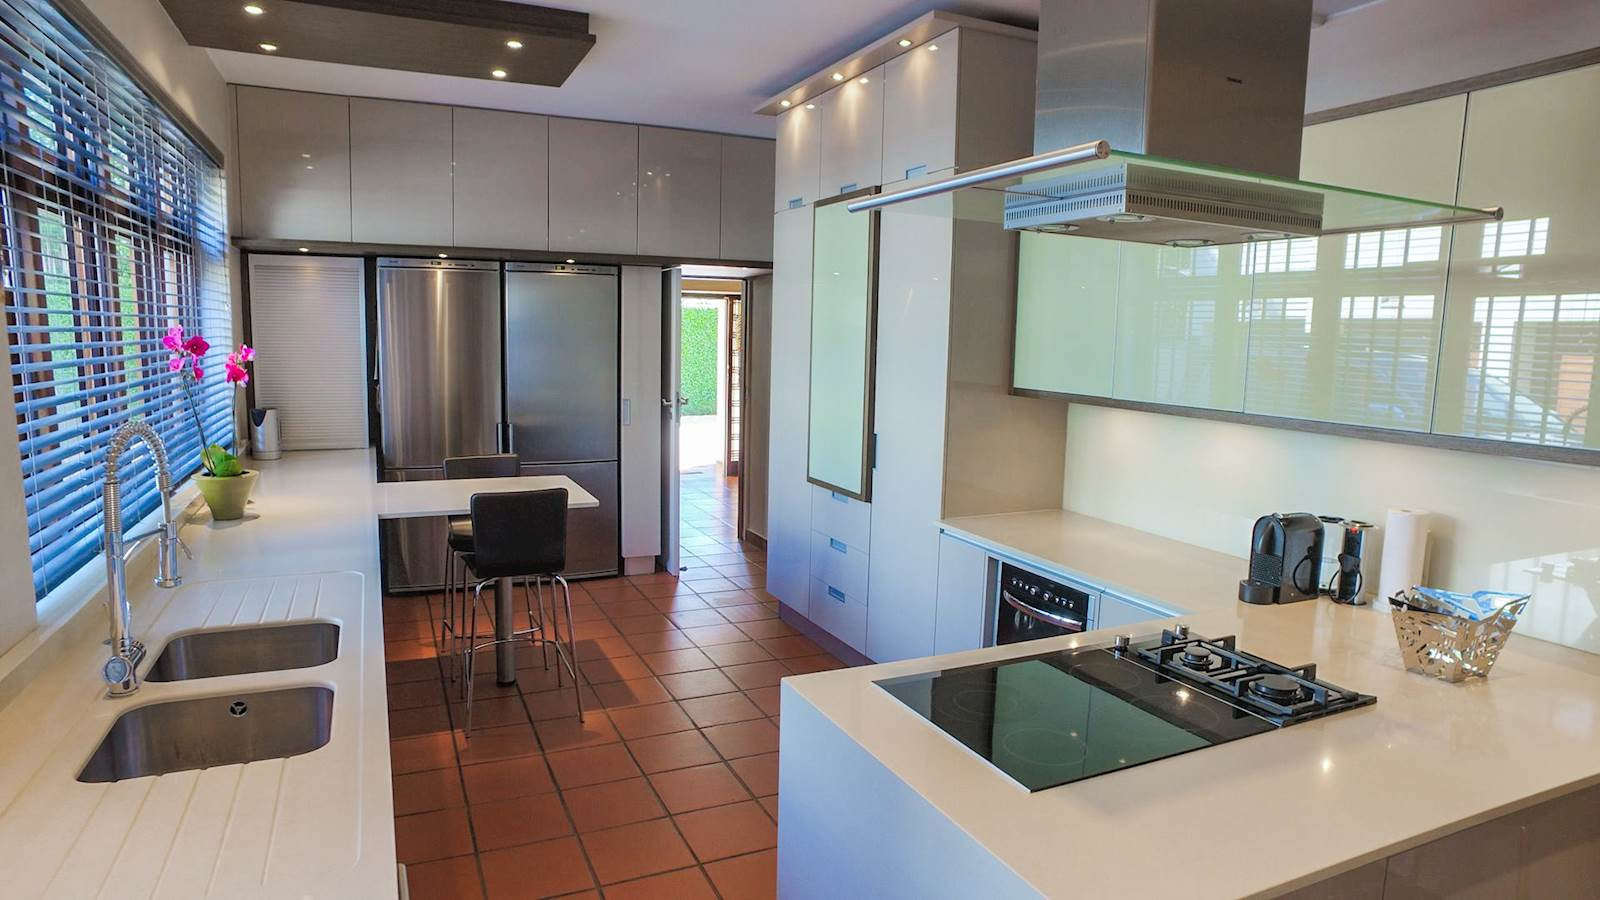 4 Bedroom House for sale in Waterkloof Ridge ENT0005736 : photo#12